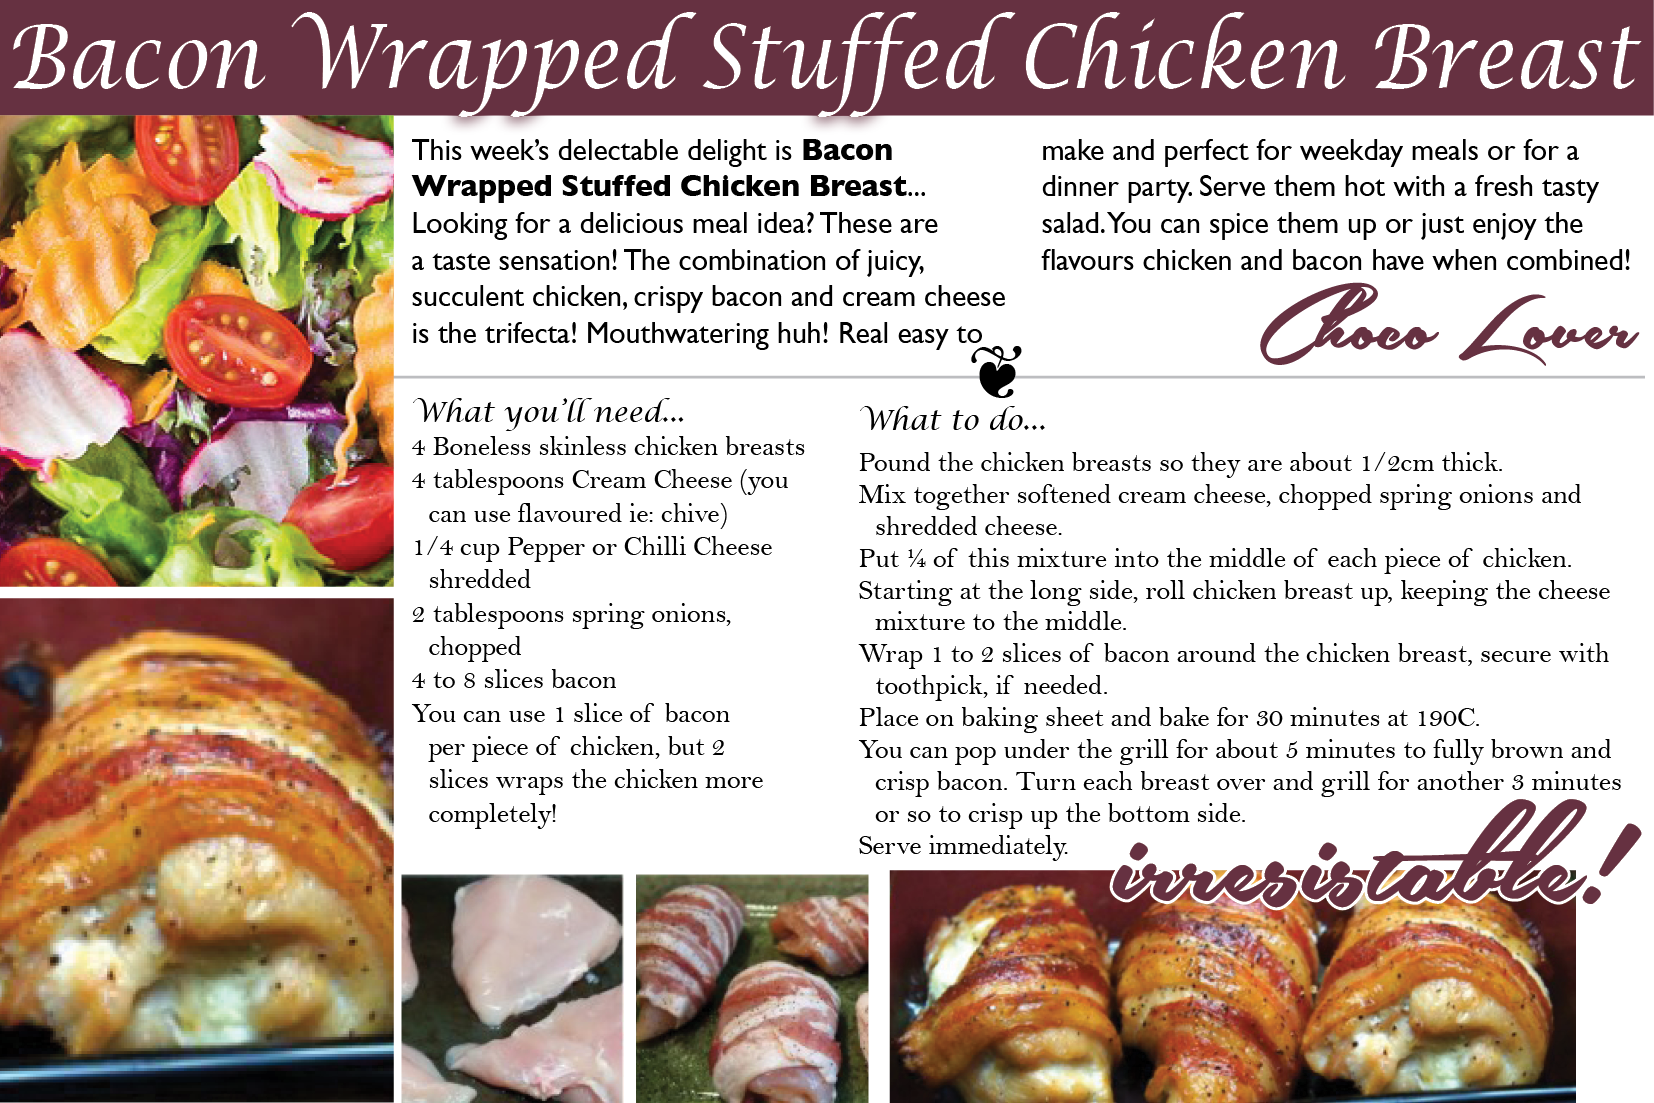 Bacon Wrapped Stuffed Chicken Breast, Looking for a delicious meal idea? These are a taste sensation! The combination of juicy, succulent schicken, crispy bacon and cream cheese is the trifecta!